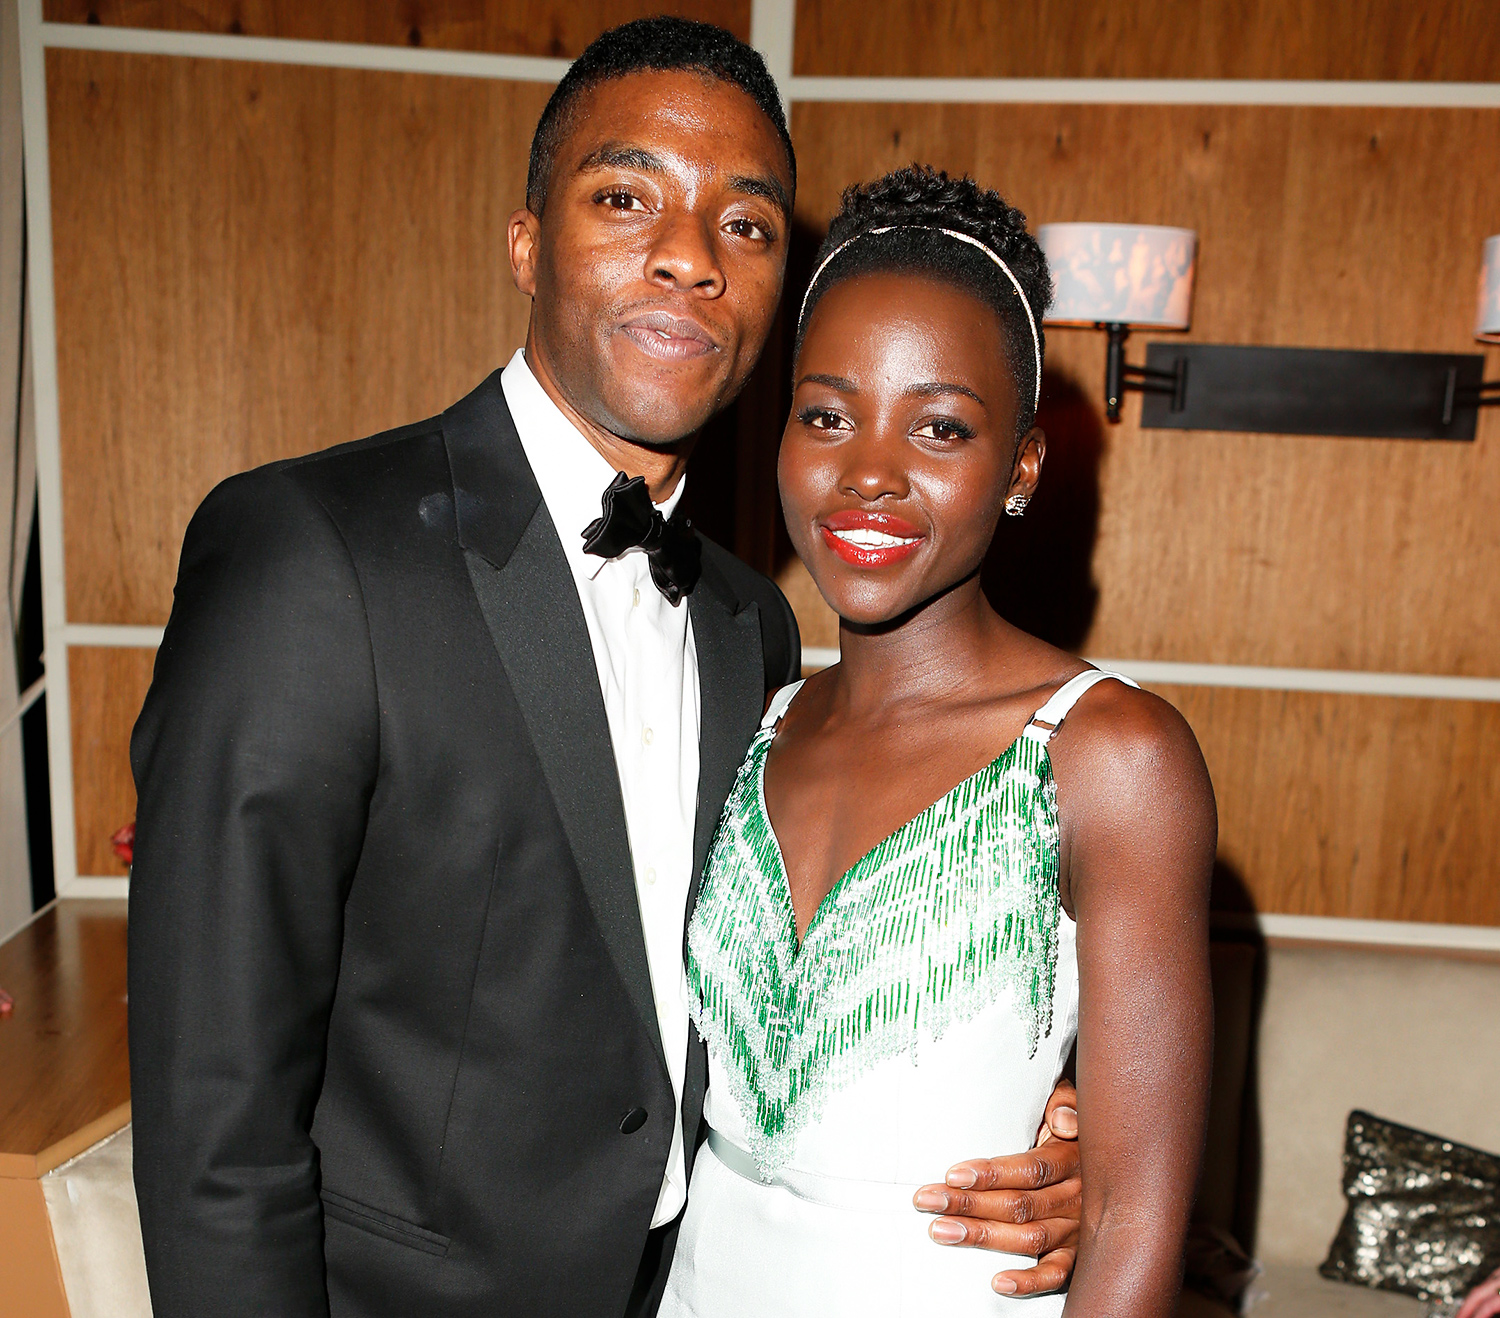 Chadwick Boseman and Lupita Nyong'o attend the 2014 Vanity Fair Oscar Party Hosted By Graydon Carter on March 2, 2014 in West Hollywood, California.